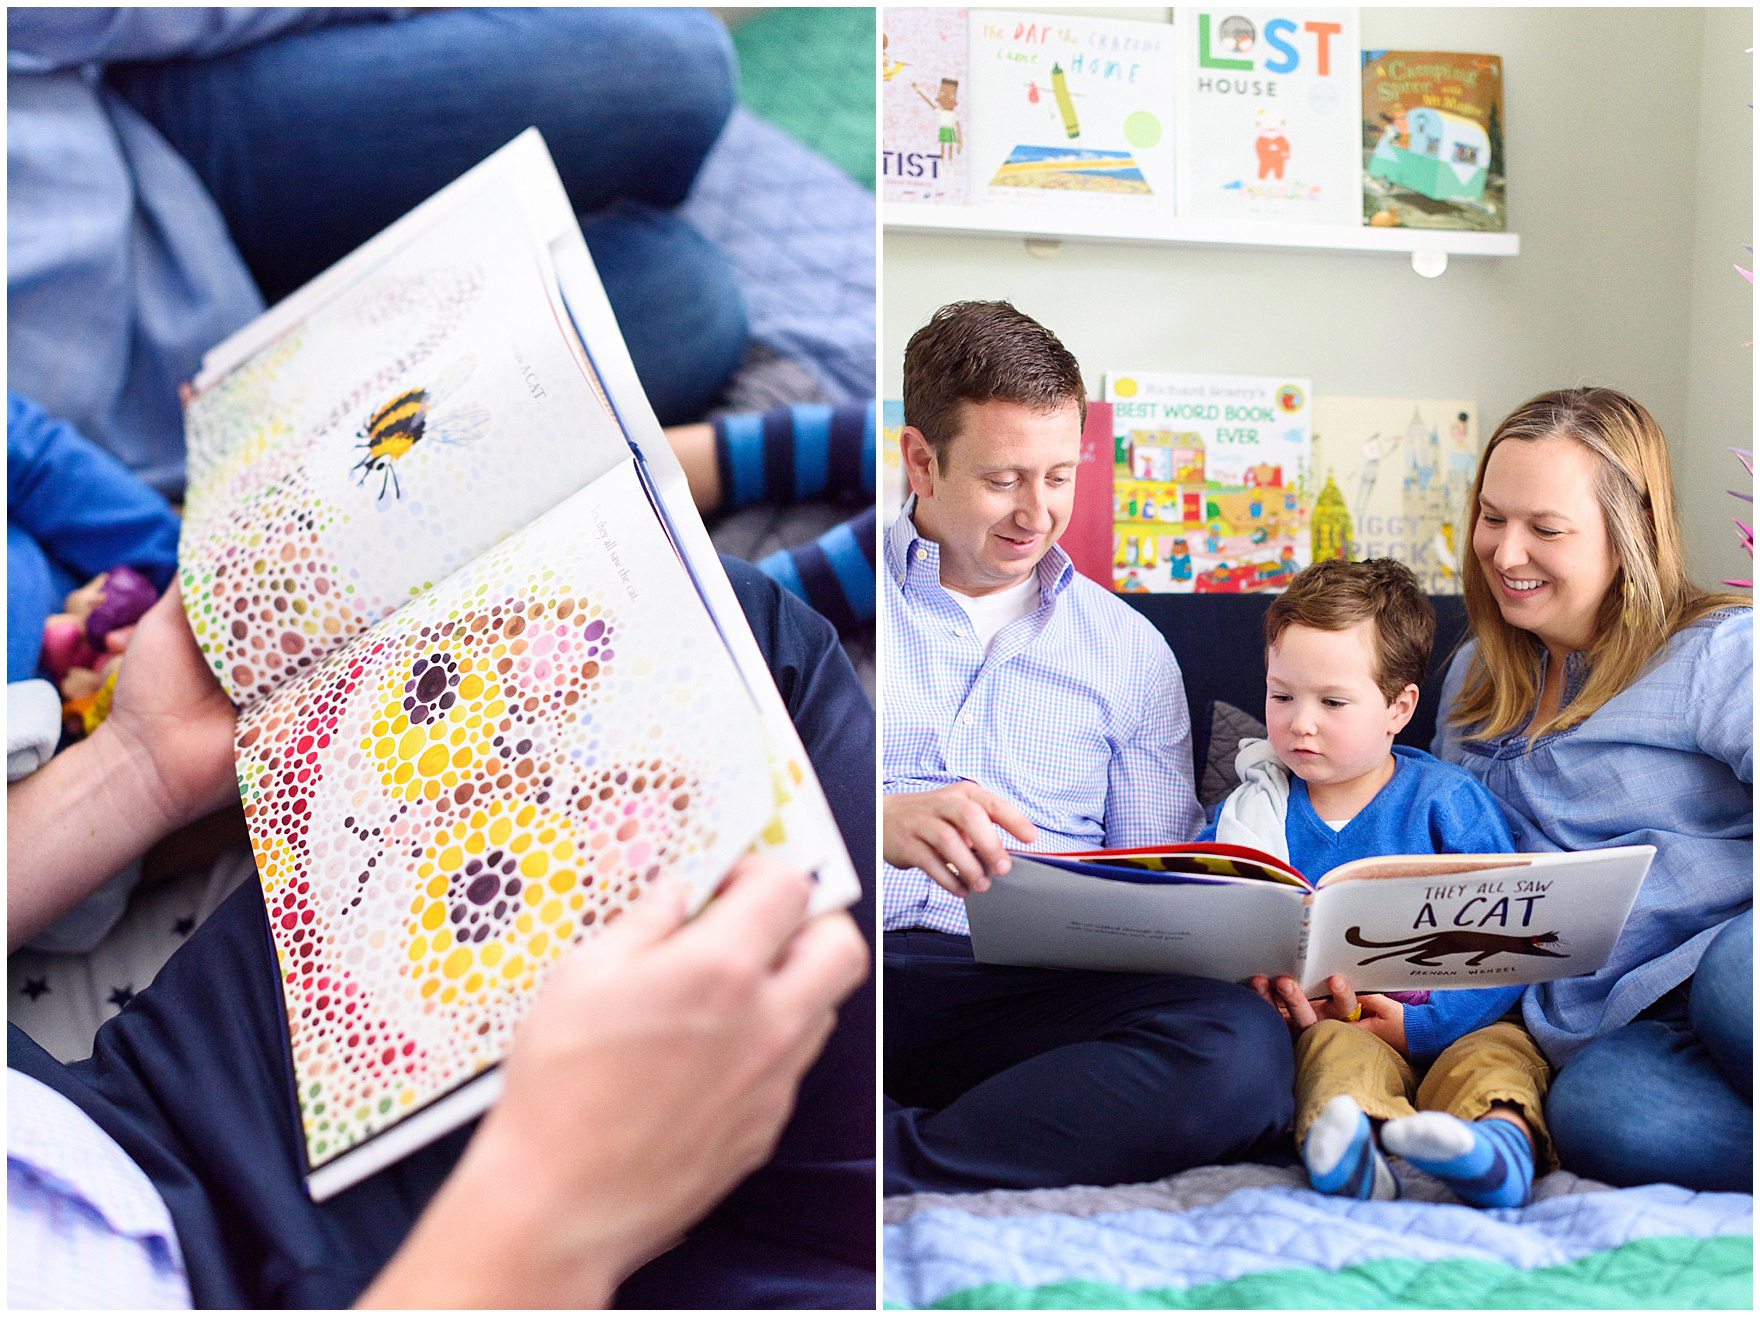 A boy reads a book with his mom and dad during an at home family session.